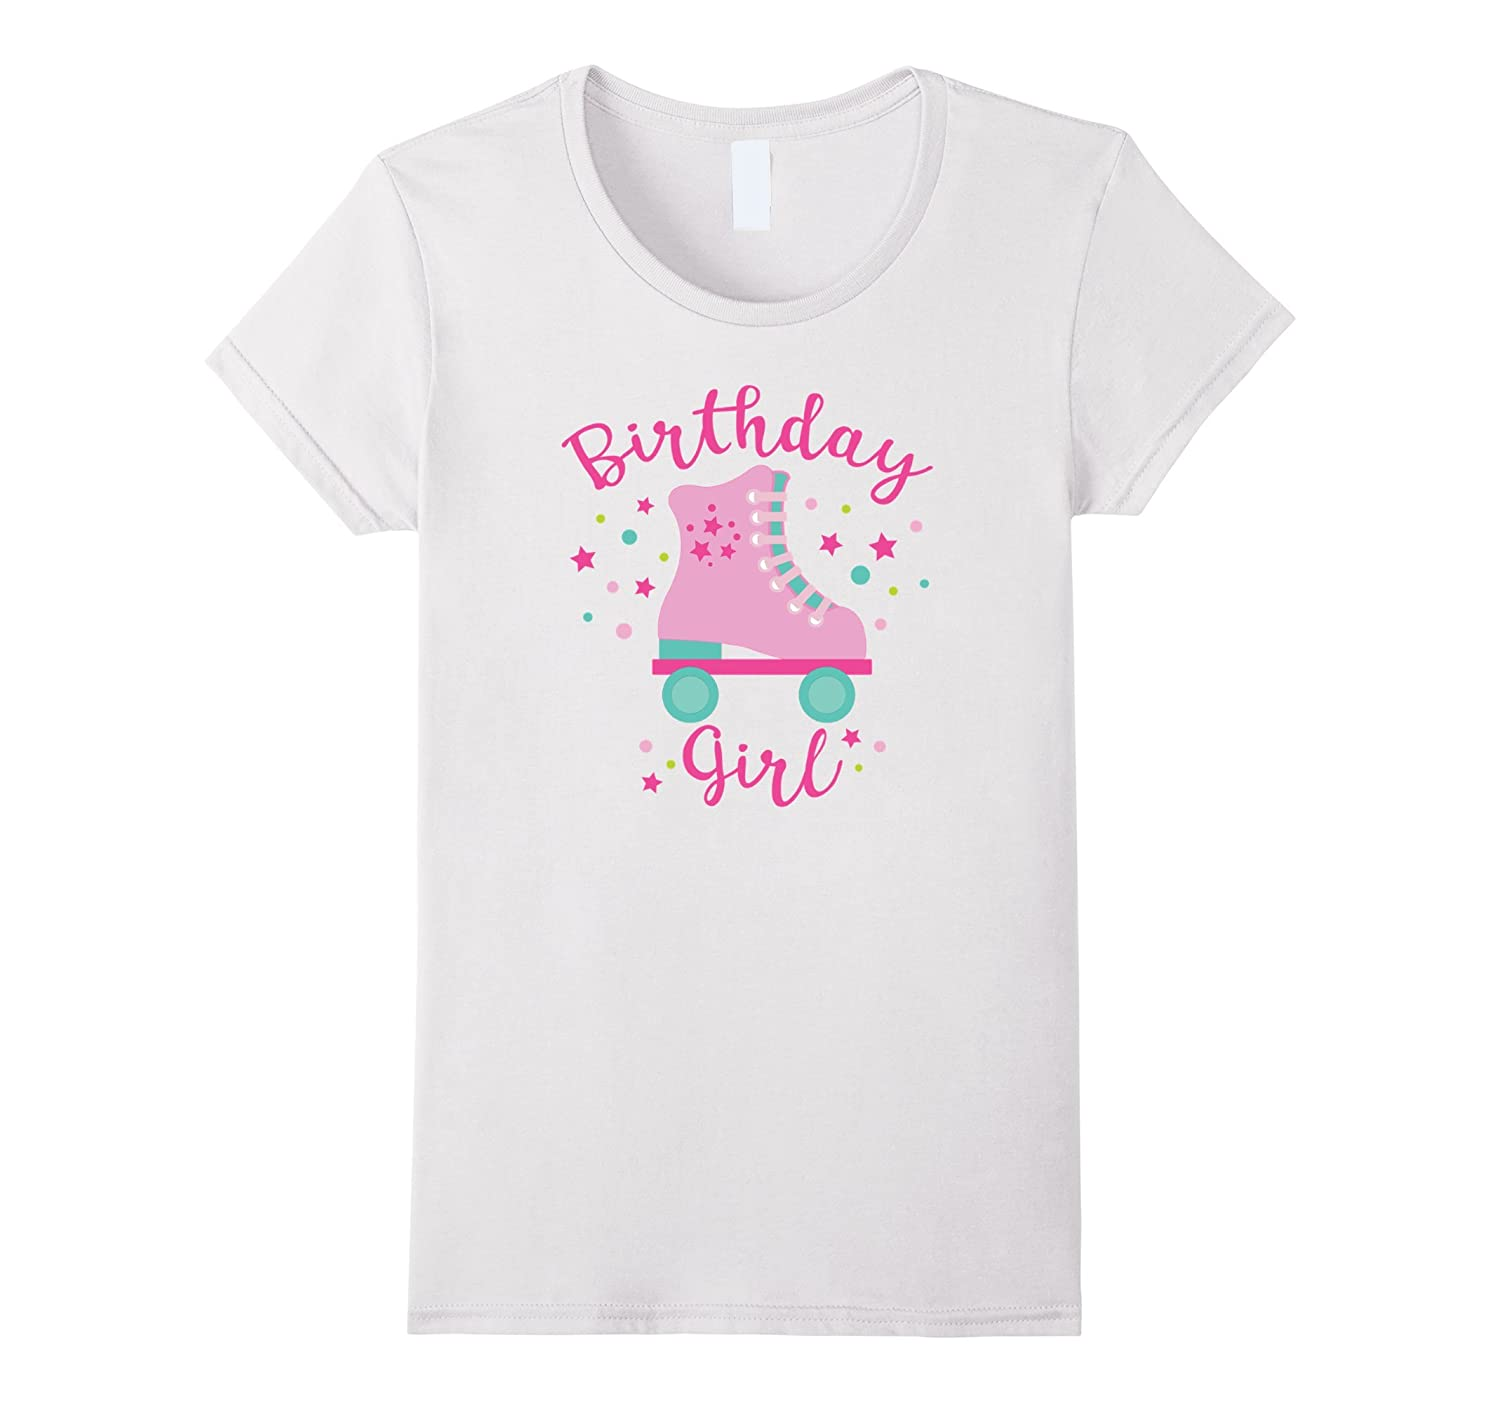 Rollerskate Birthday Girl T-Shirt-TH